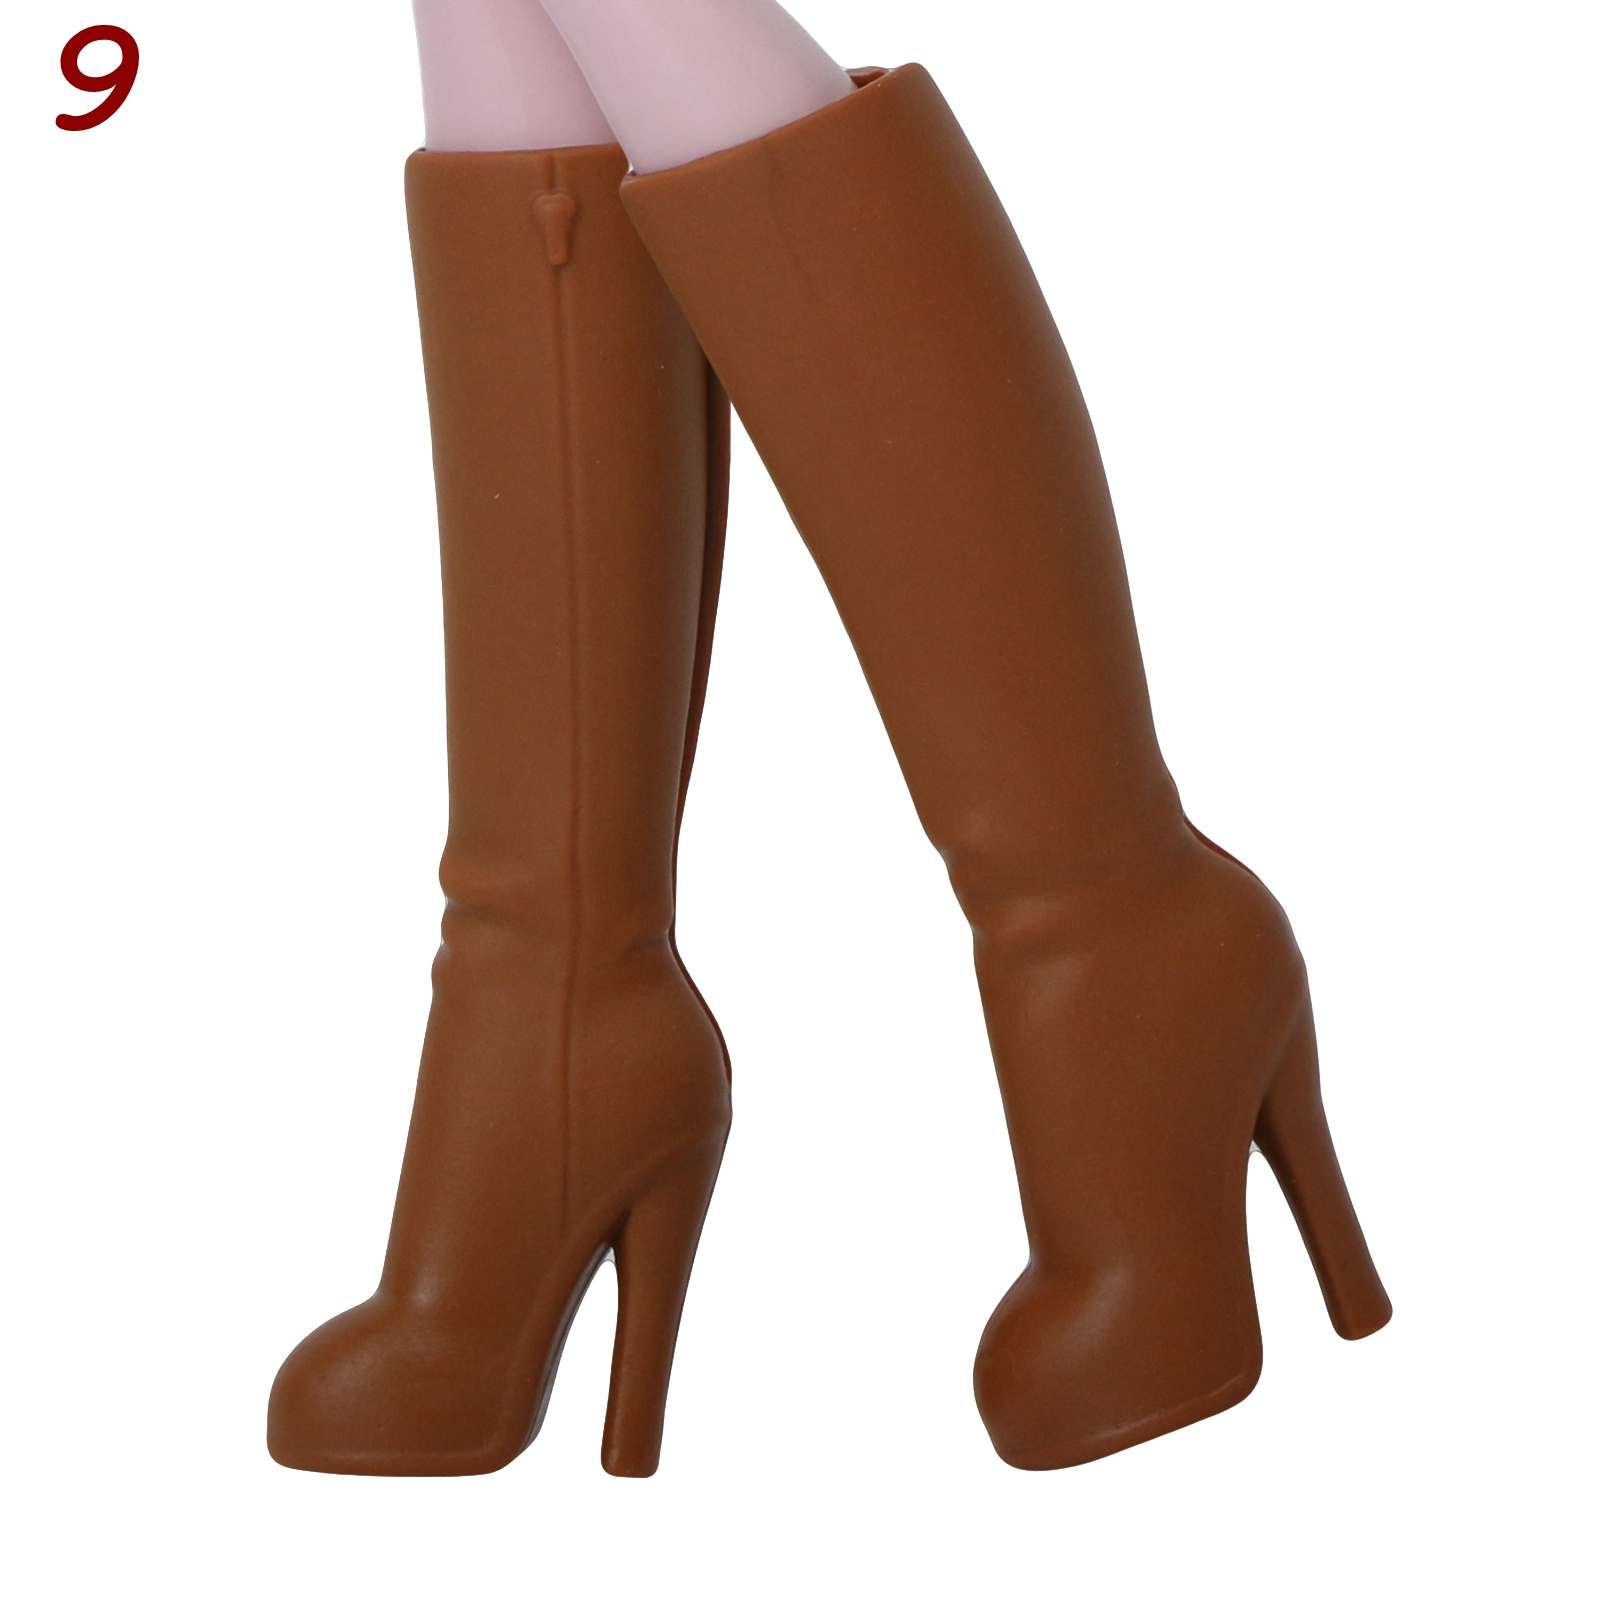 Long Boots Casual High Heels Cute Shoes Clothes For  Doll Dress Access HgMO/_jn